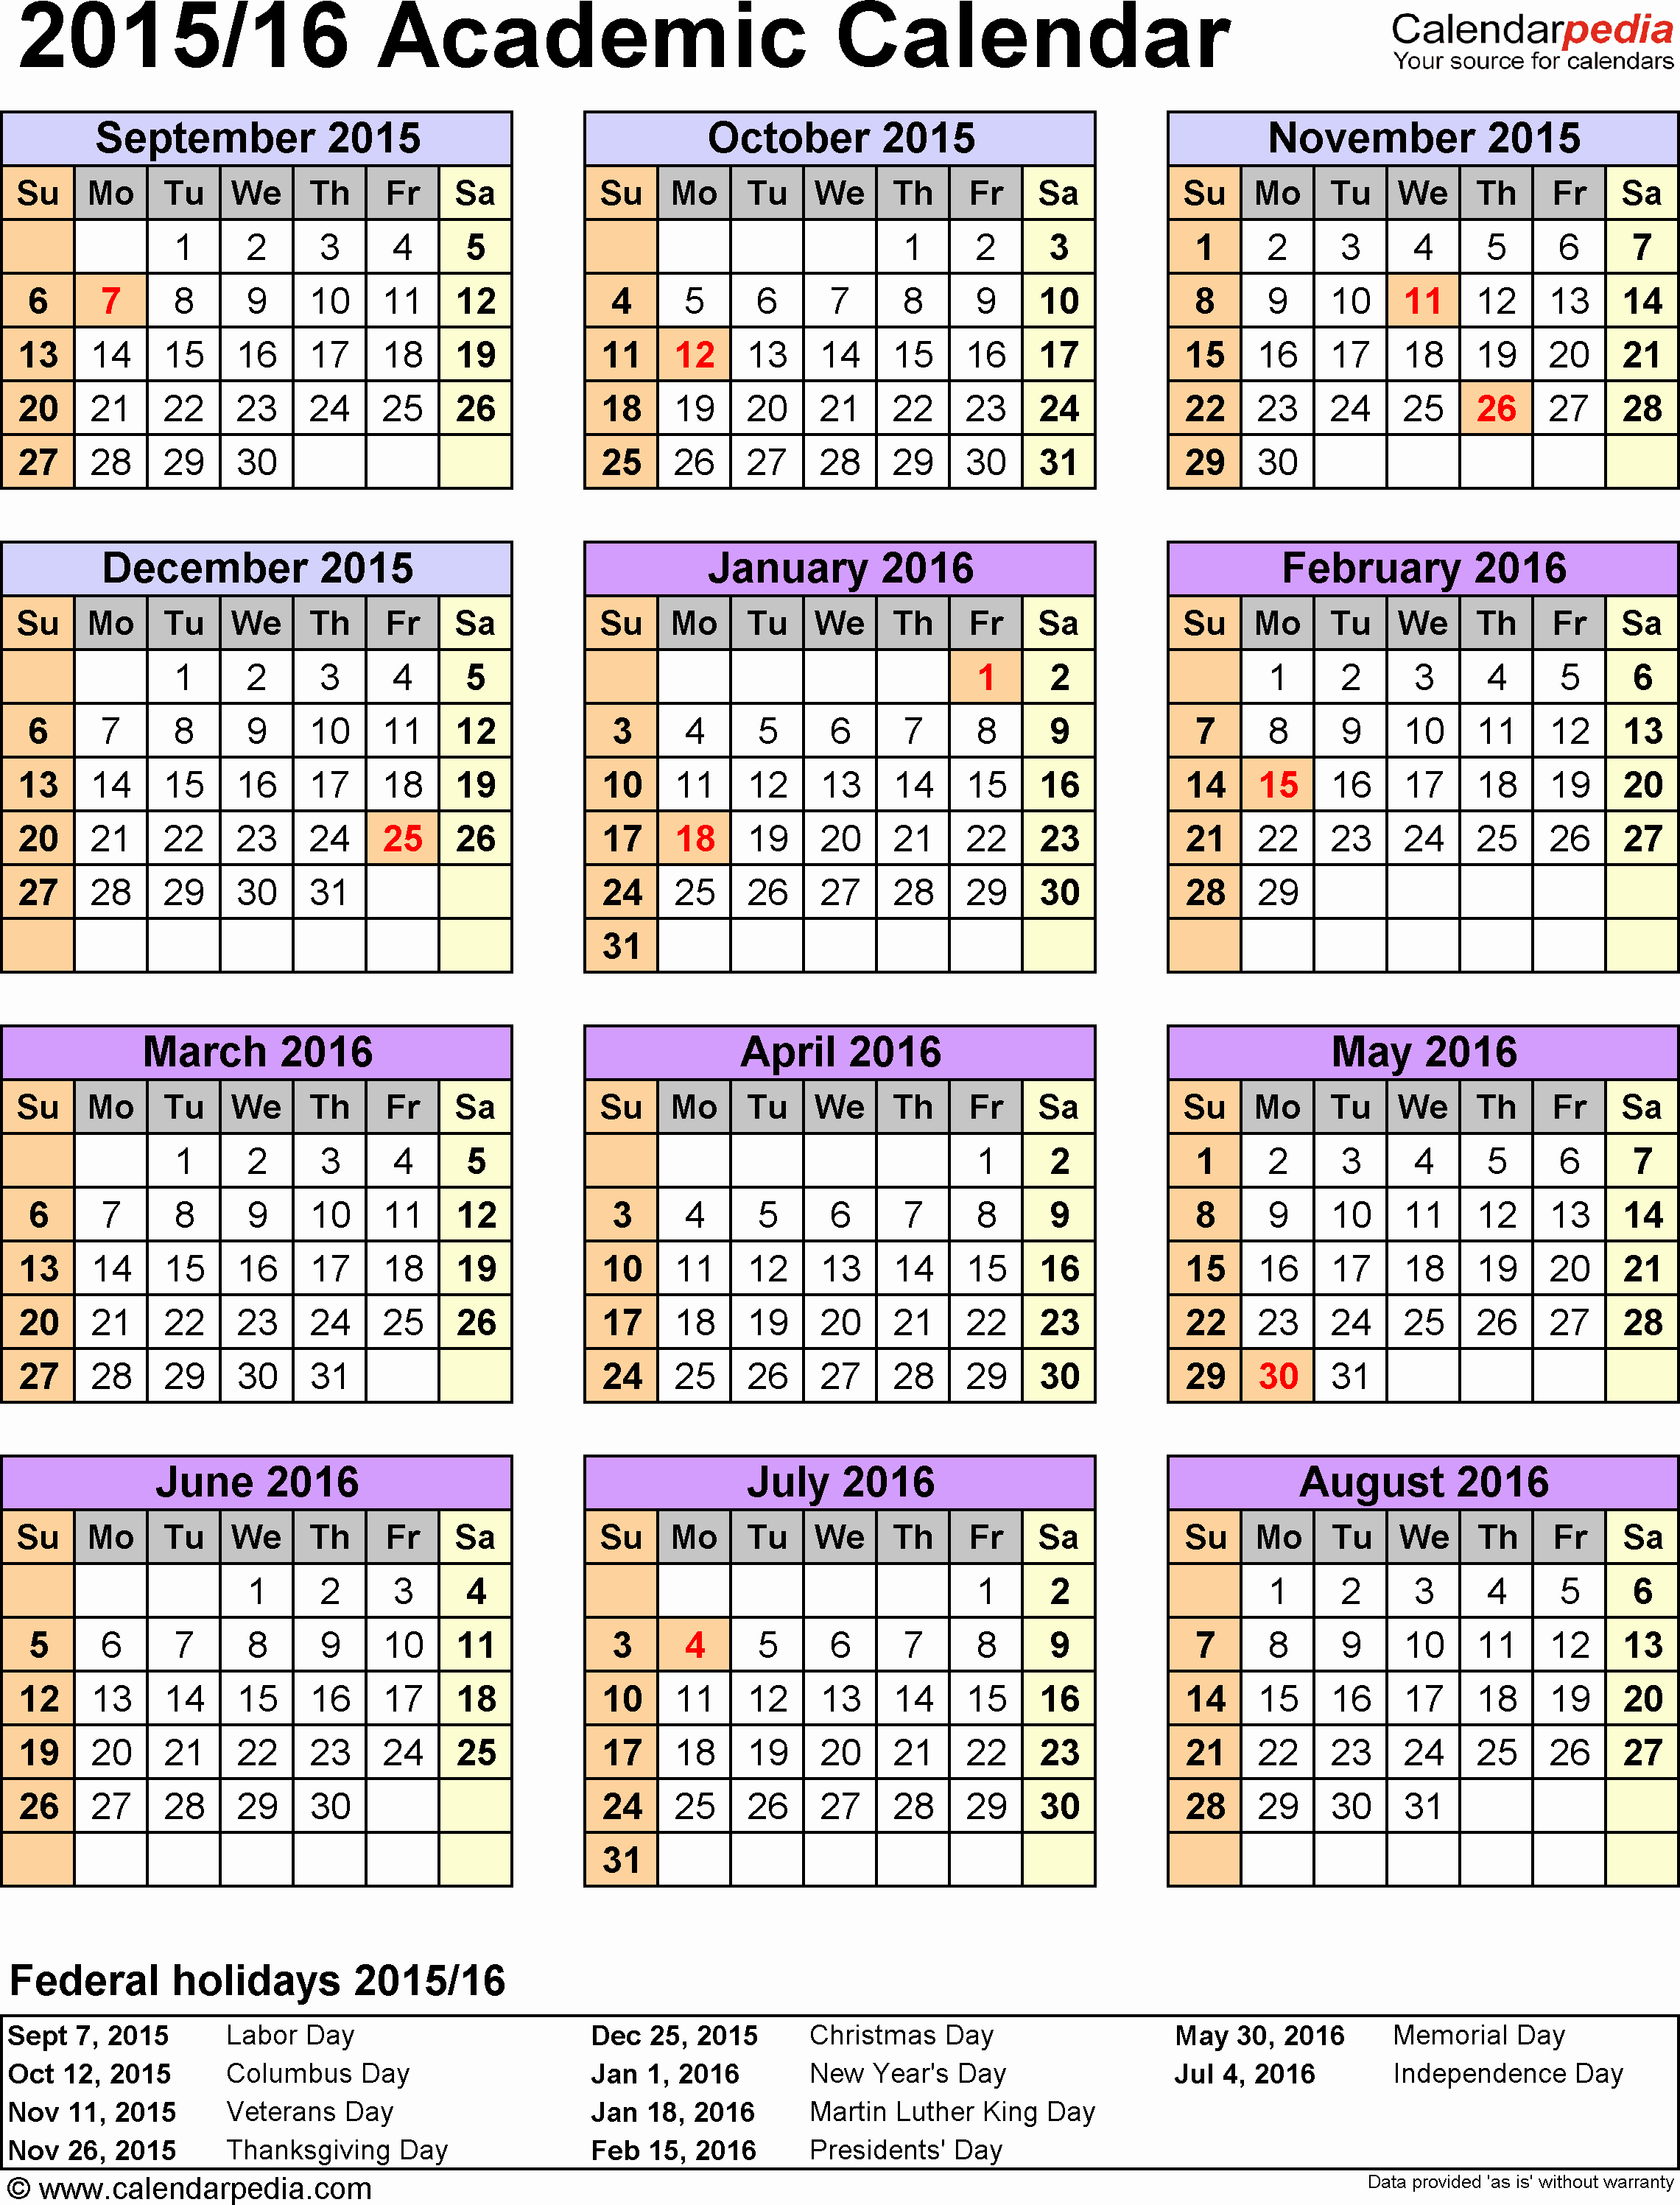 Speech therapy Schedule Template Beautiful Template 5 Academic Calendar 2015 16 for Excel Portrait 1 Page Year Overview